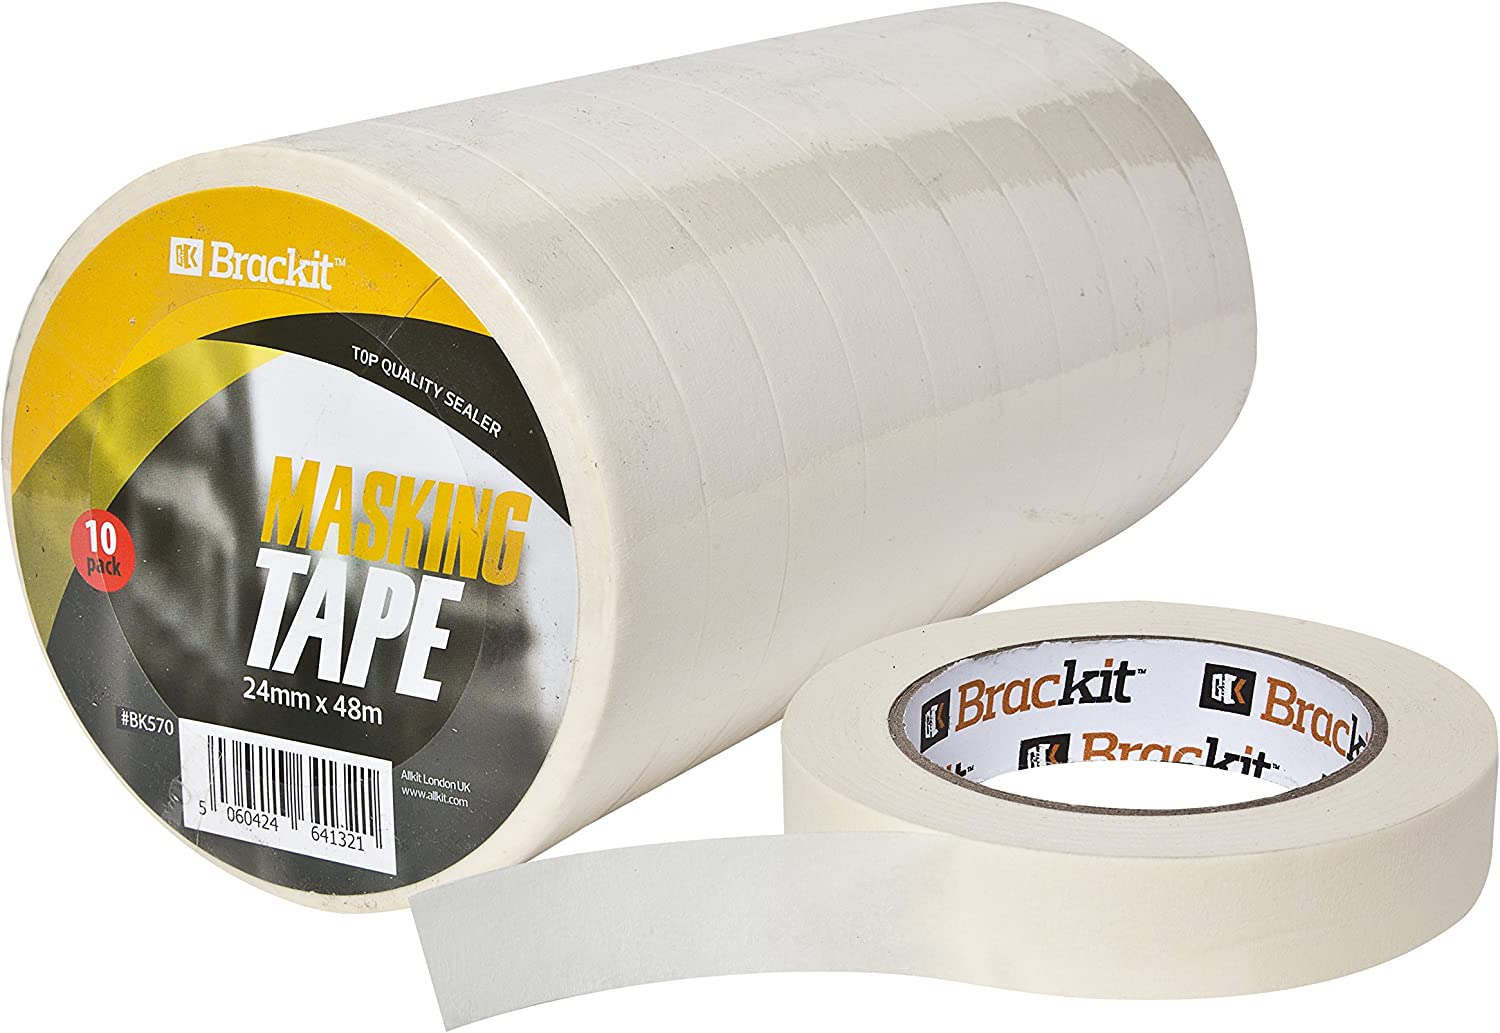 Hinrichs 7 x Masking Tape for Artists 6 Rolls of 50m x 30mm Plus 1 roll of 50m x 20mm Masking Tape for Clean Masking When Painting